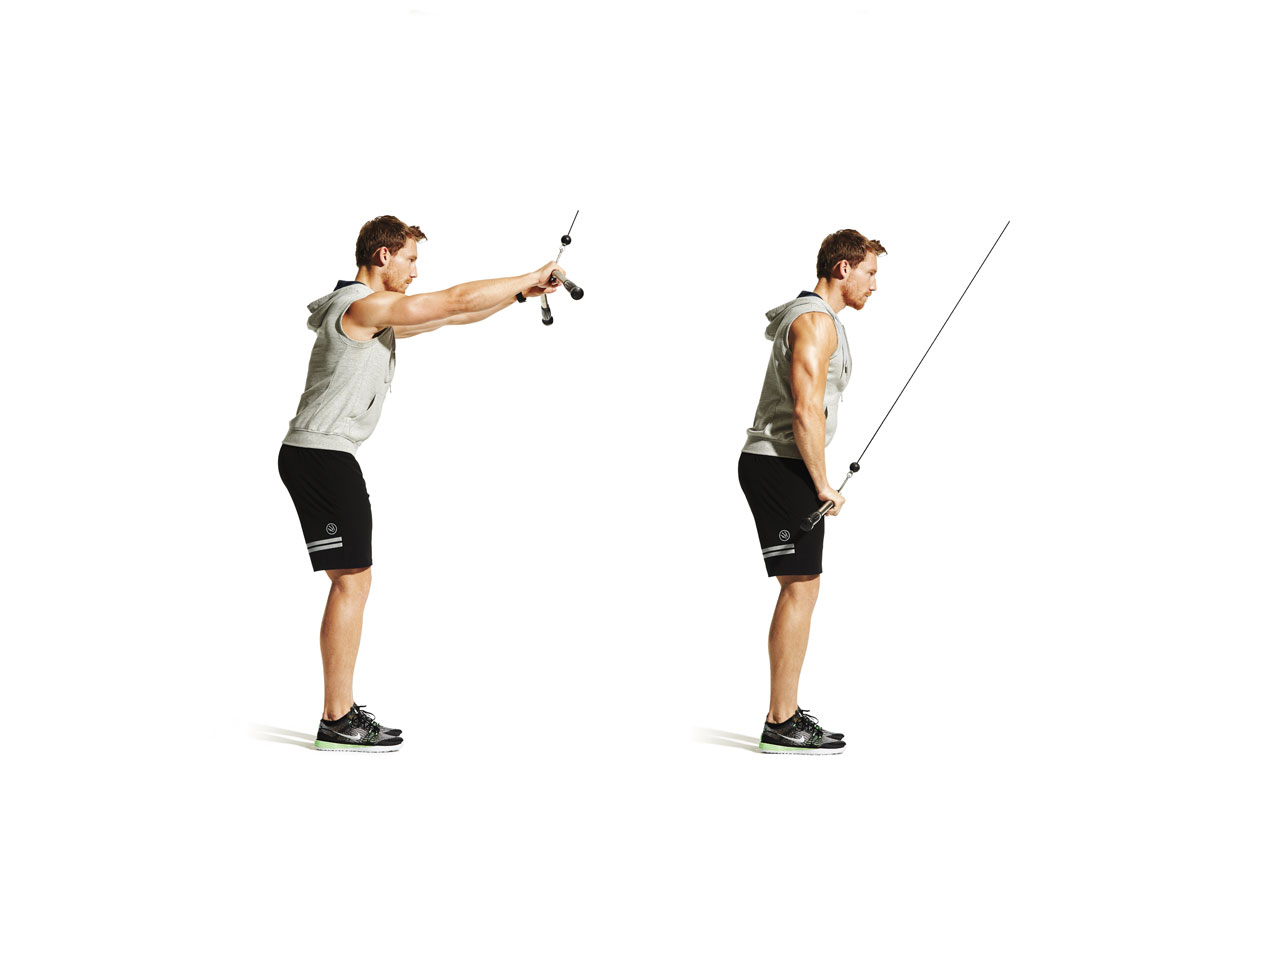 straight-arm pulldown video